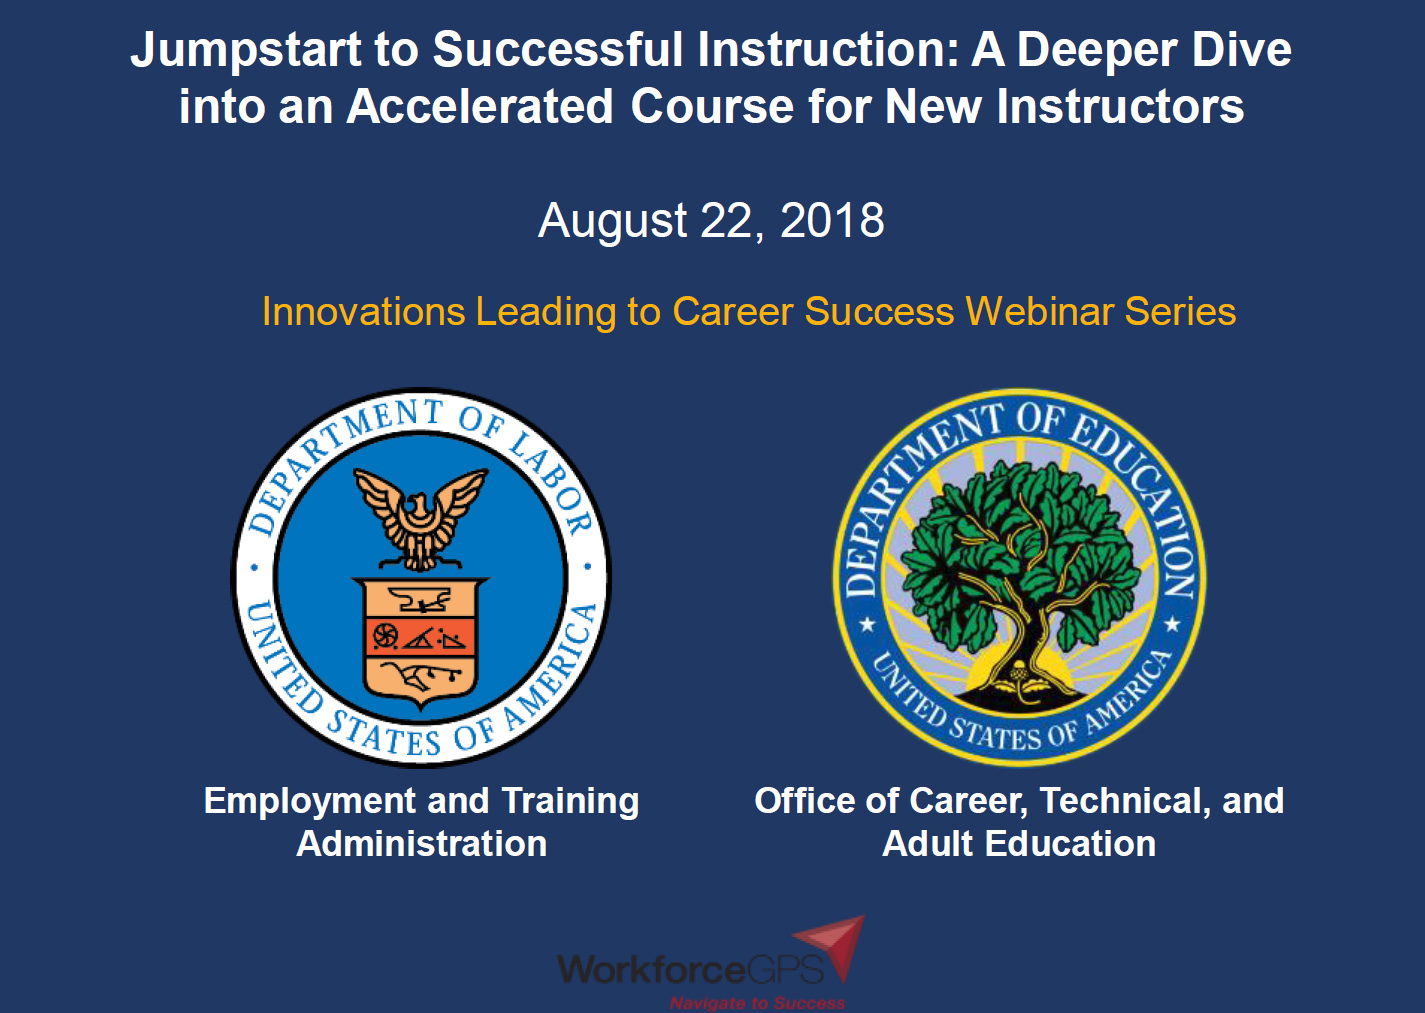 Jumpstart to Successful Instruction: A Deeper Dive into an Accelerated Course for New Instructors